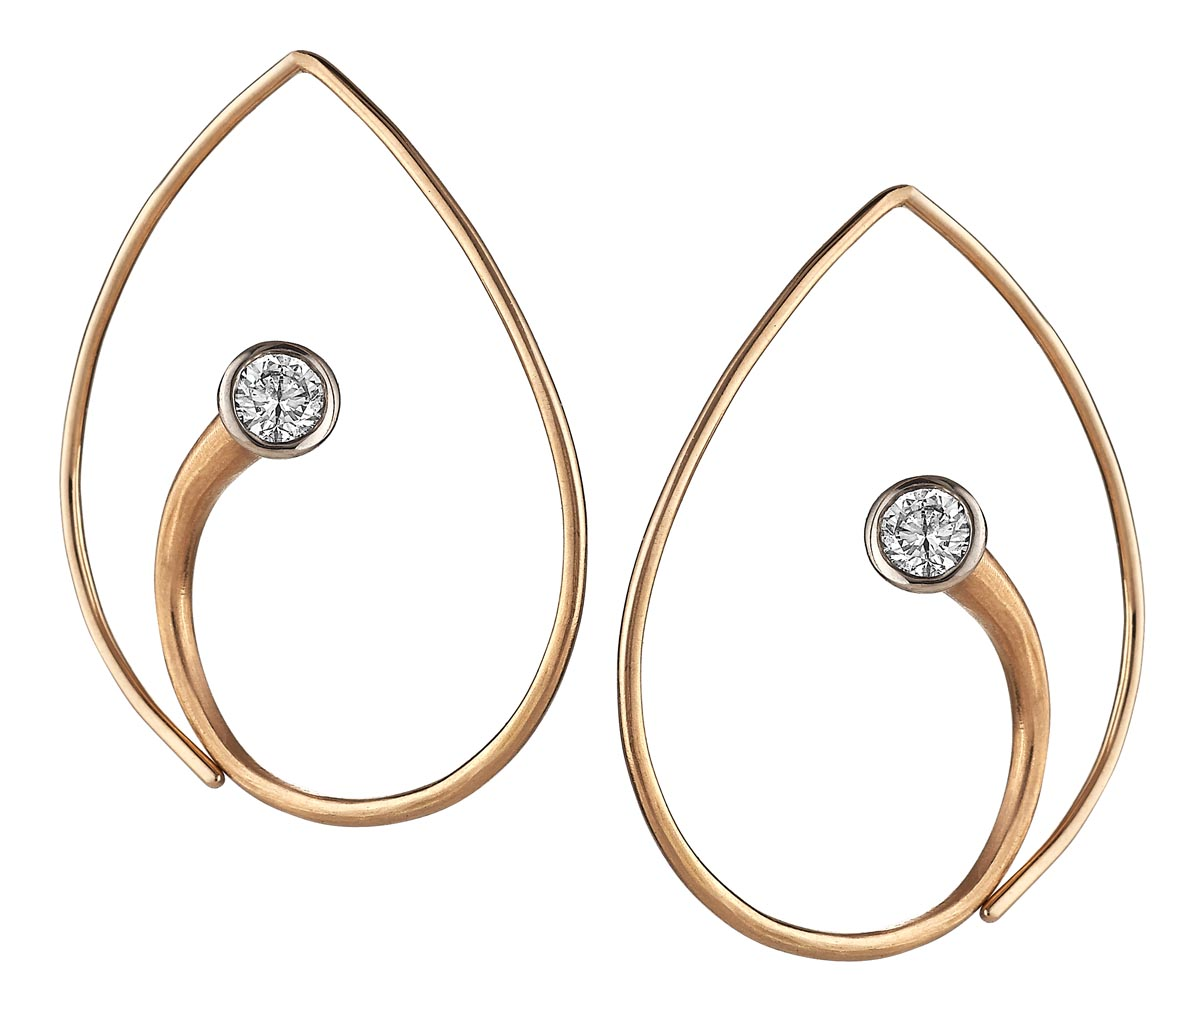 Inverted Vortex Earrings in 18 Karat Yellow gold set with 0.50 carat total weight diamonds.